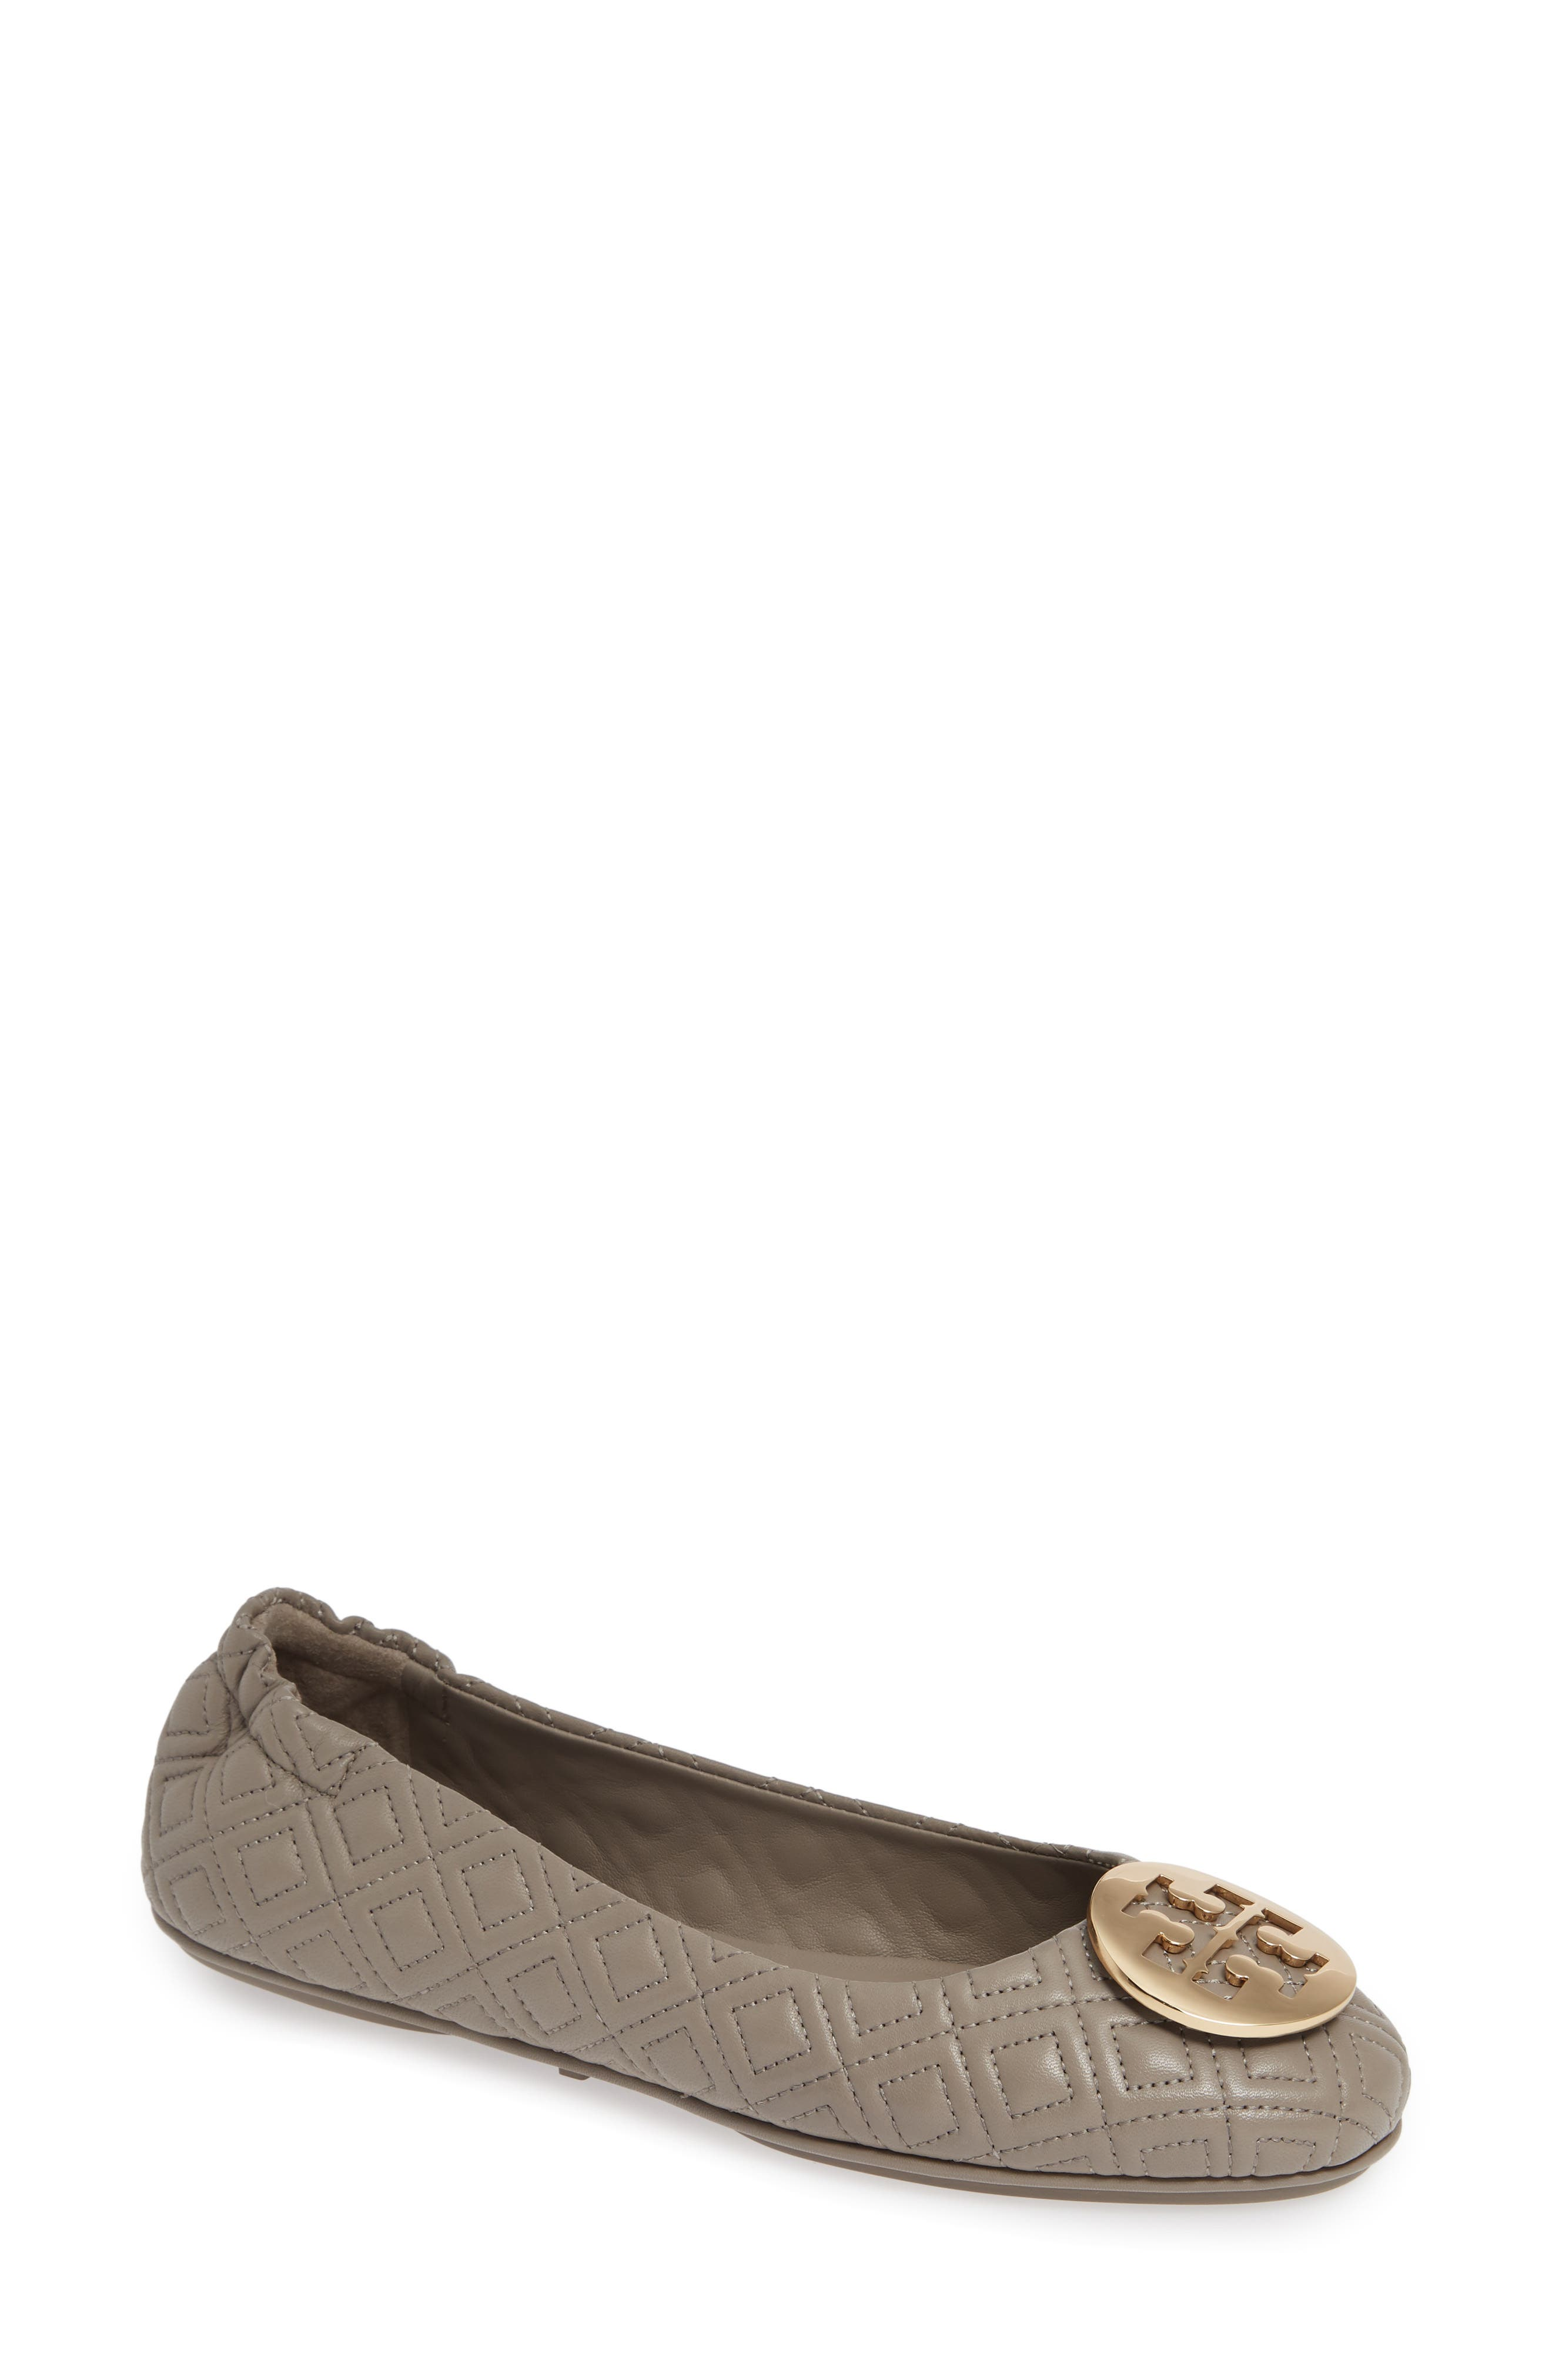 TORY BURCH, Quilted Minnie Flat, Main thumbnail 1, color, DUST STORM/ GOLD